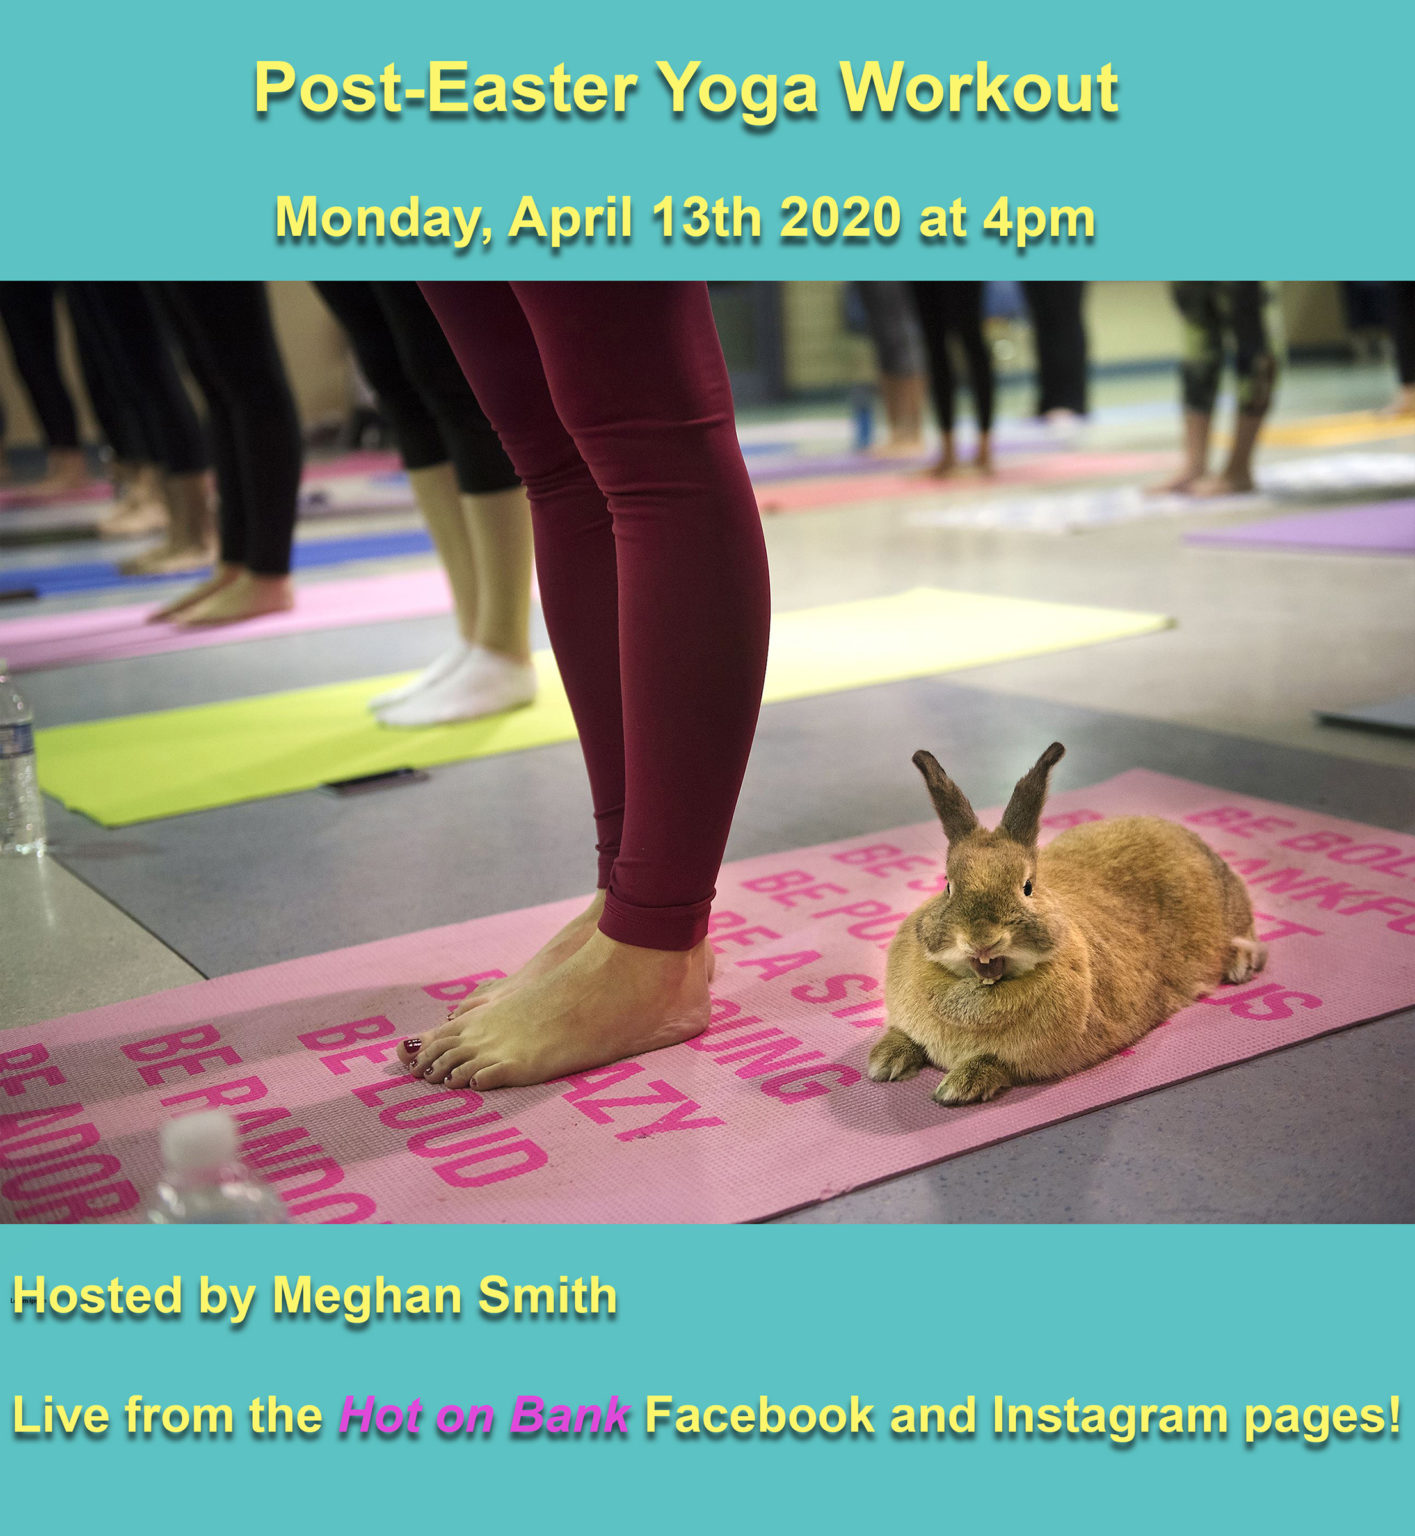 Join us for a Post-Easter Yoga workout Monday April 13th at 4pm Live from the Hot on Bank Facebook and Instagram pages!